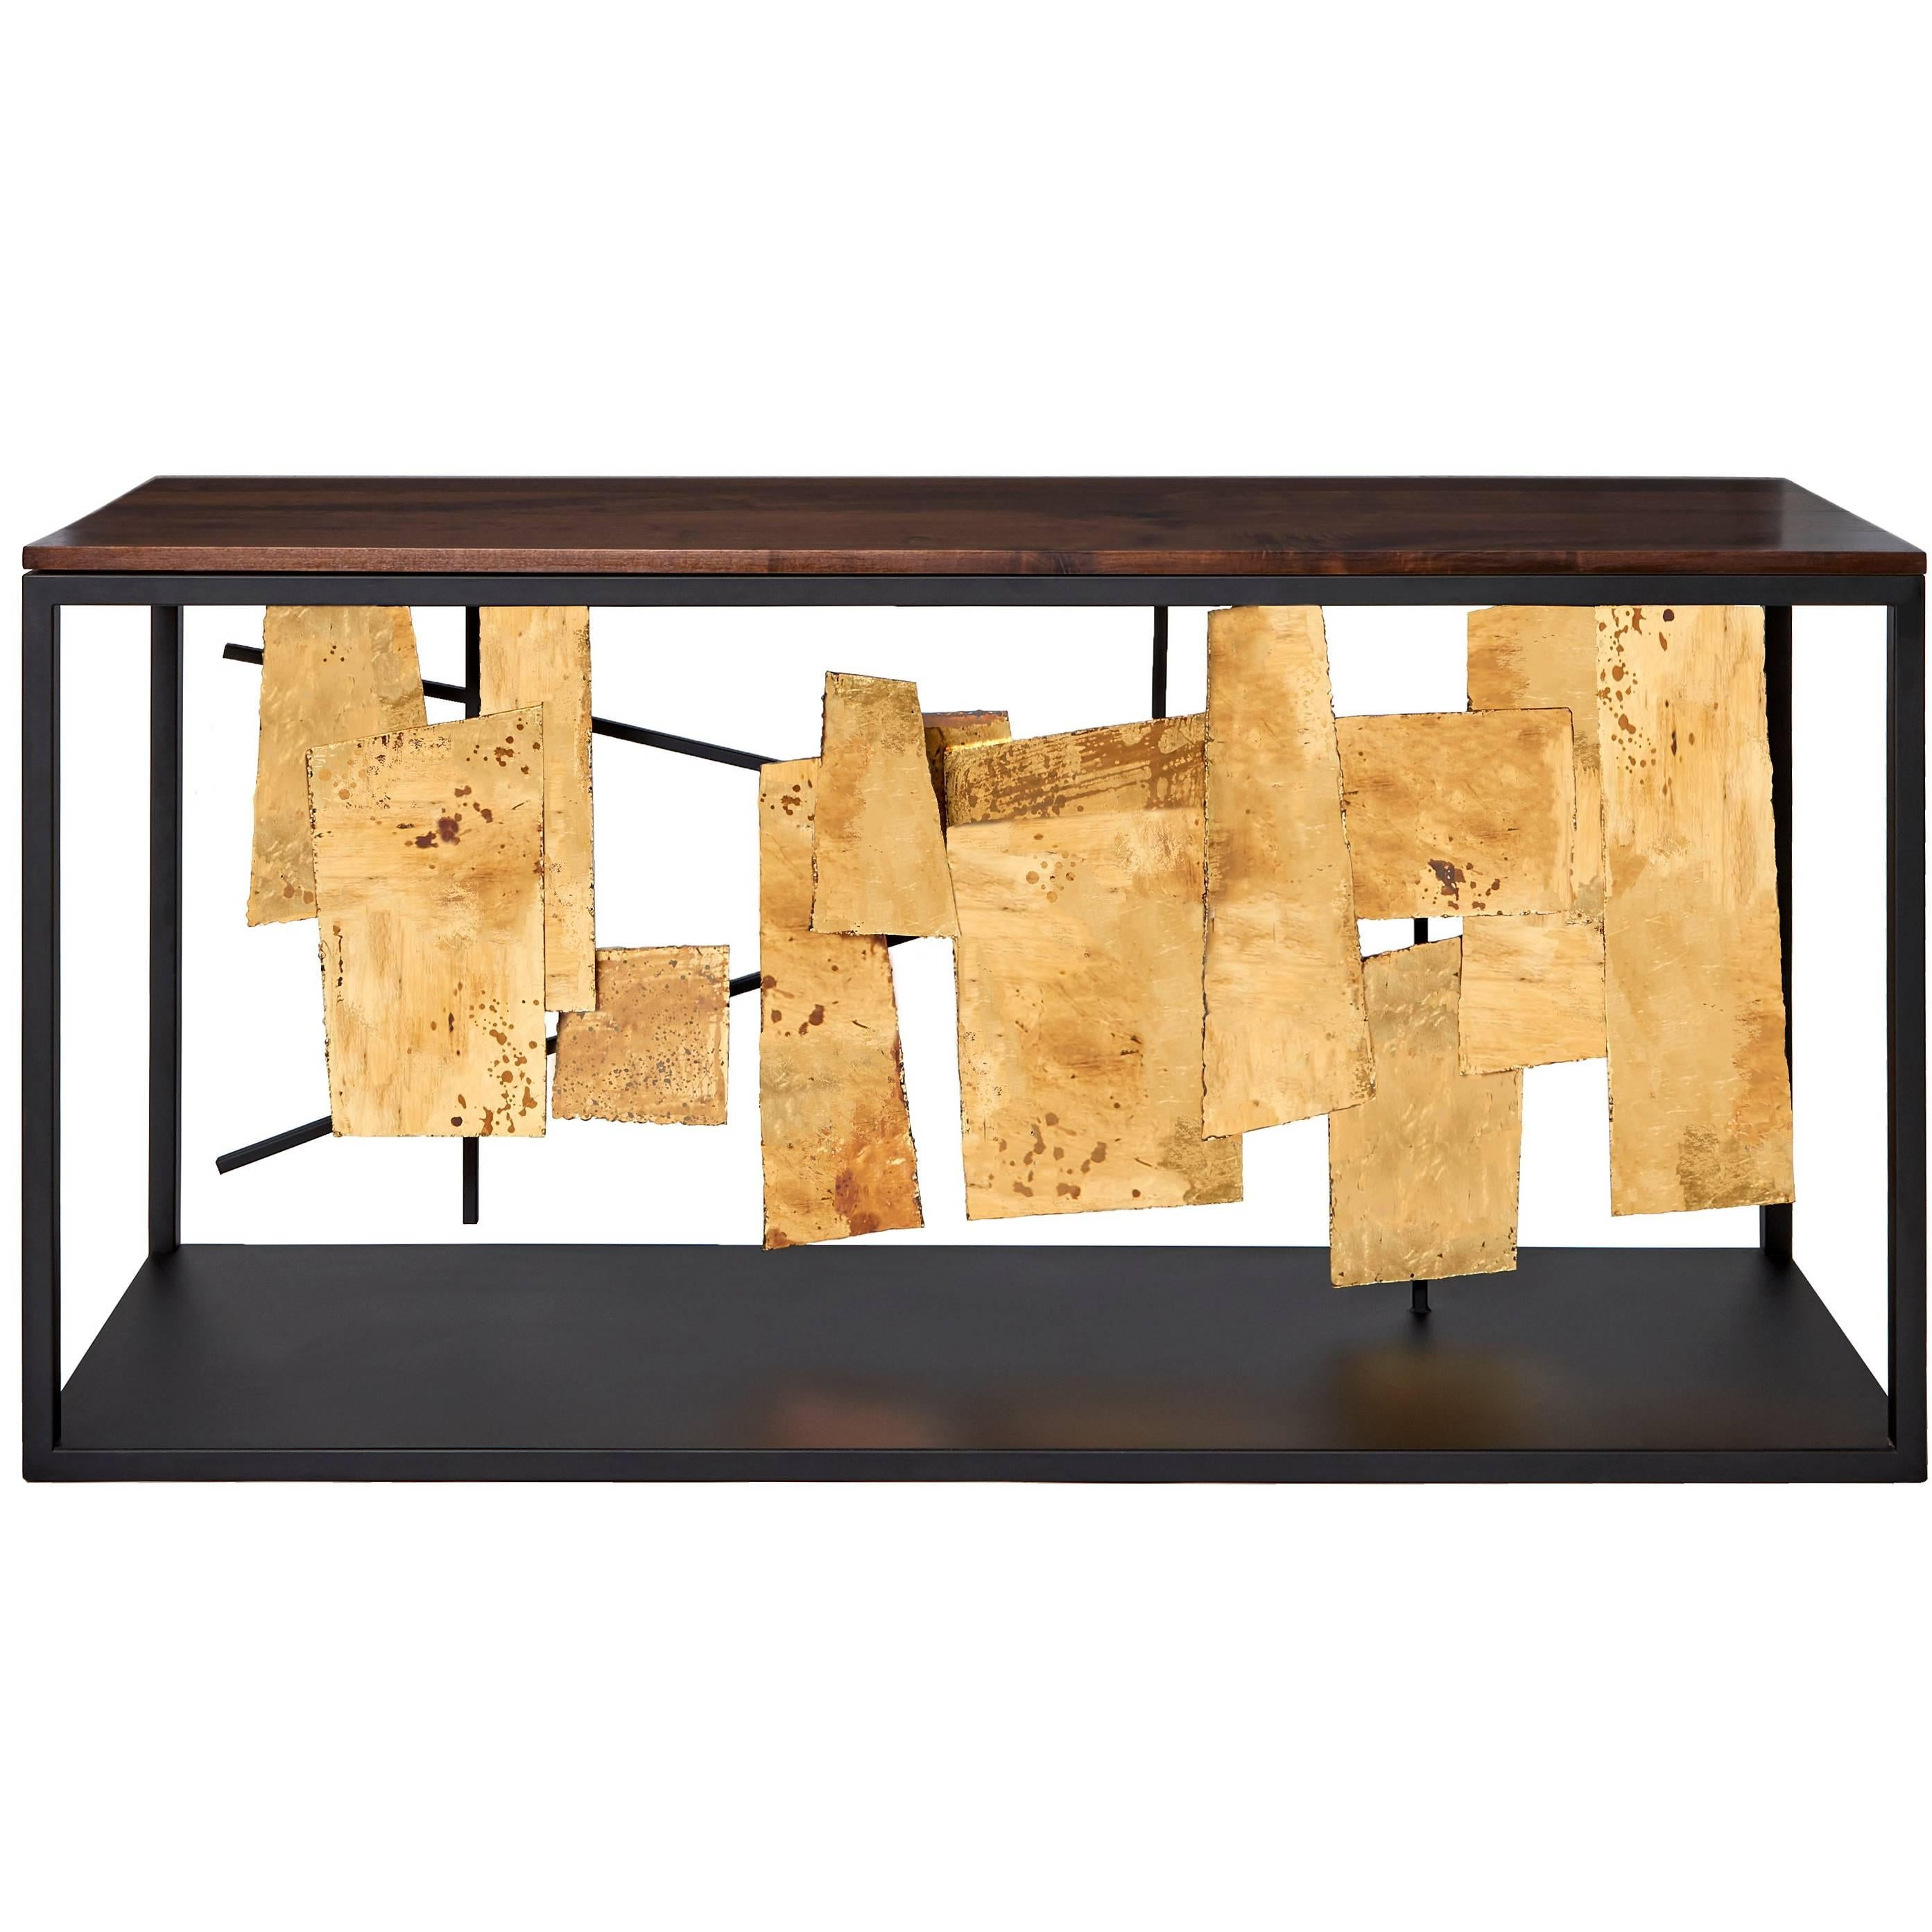 Henry Console By Morgan Clayhall, Steel, Gold Leaf And Solid Walnut For Sale